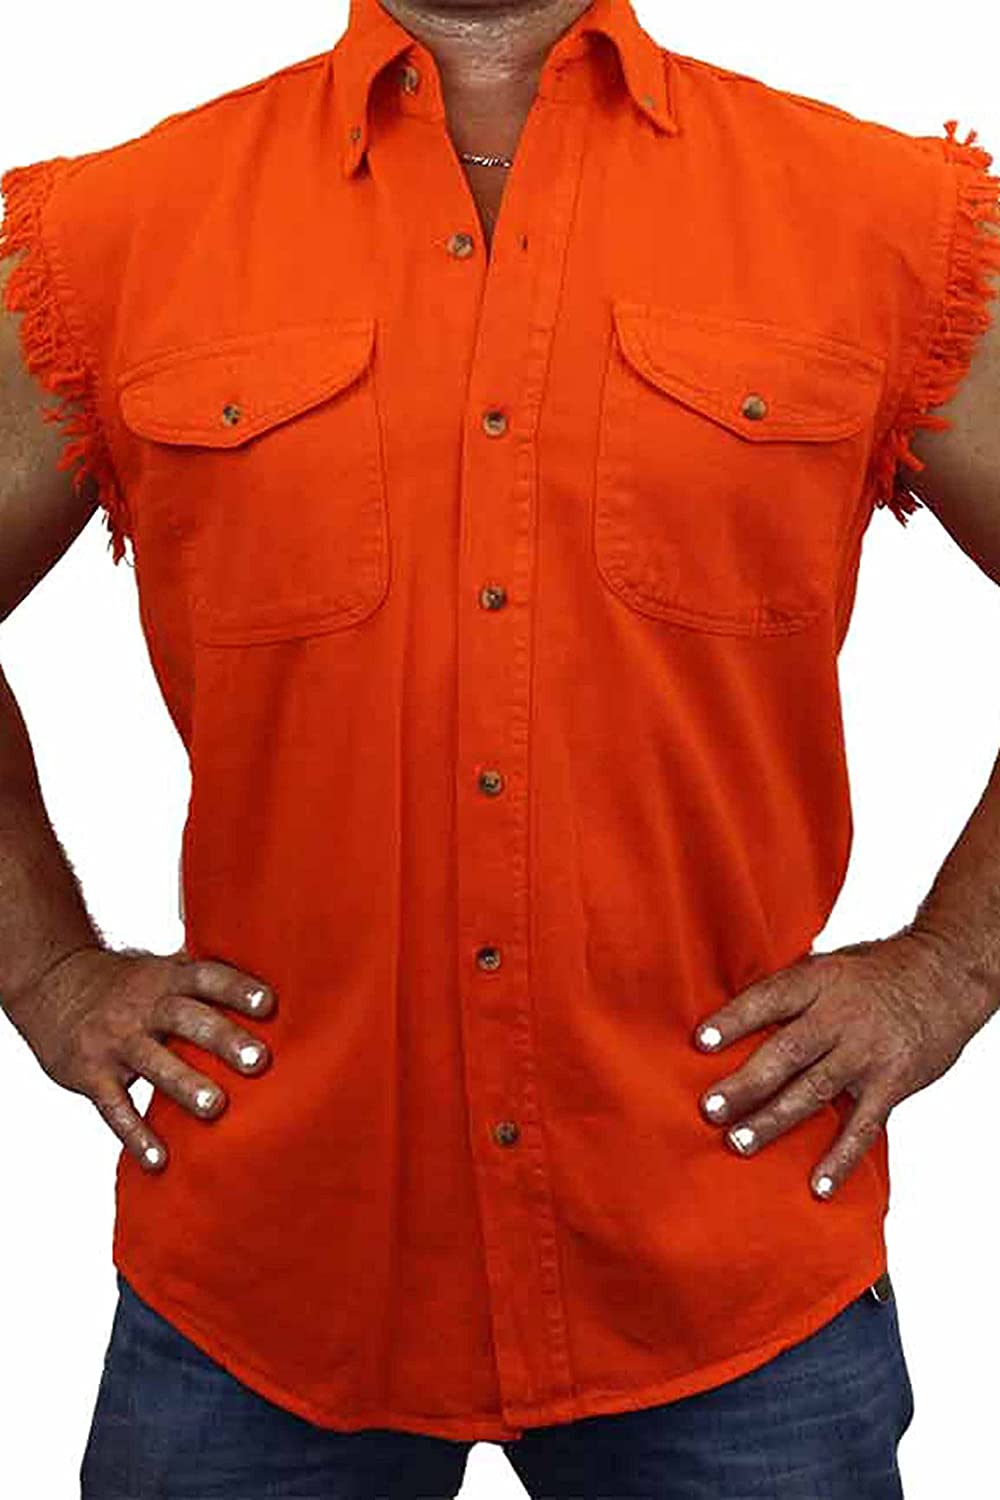 SHORE TRENDZ Mens Sleeveless Denim Shirt The Rodfather Biker Vest 5XL Orange